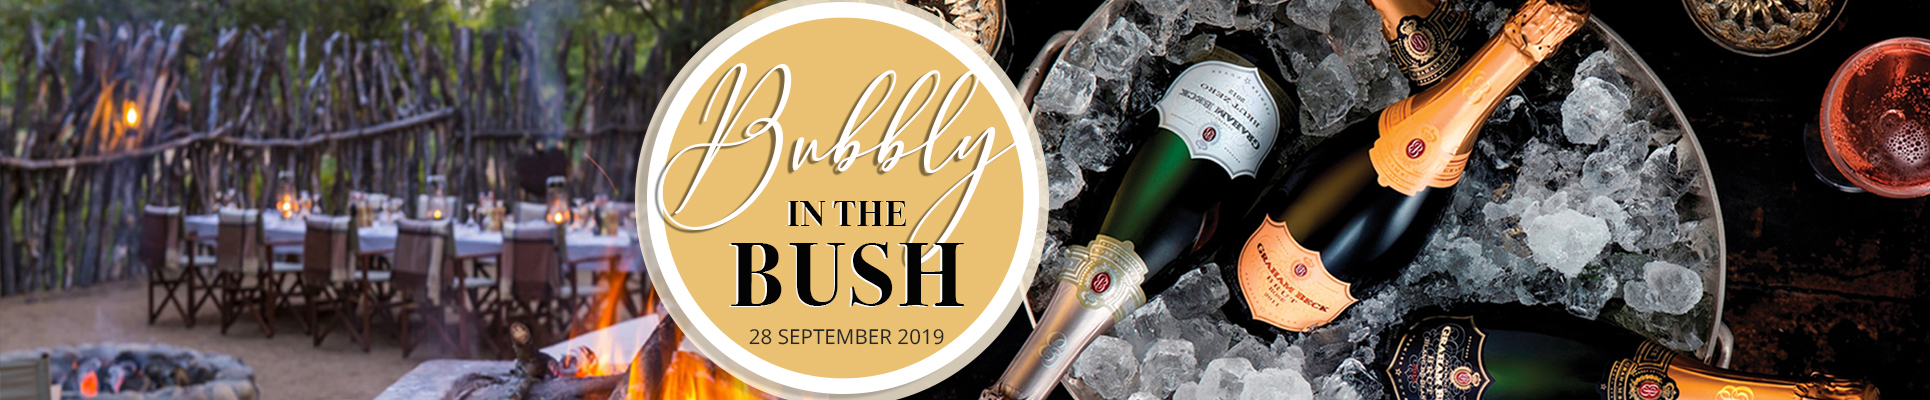 Bubbly Tasting Events at Kedar Heritage Lodge Rustenburg